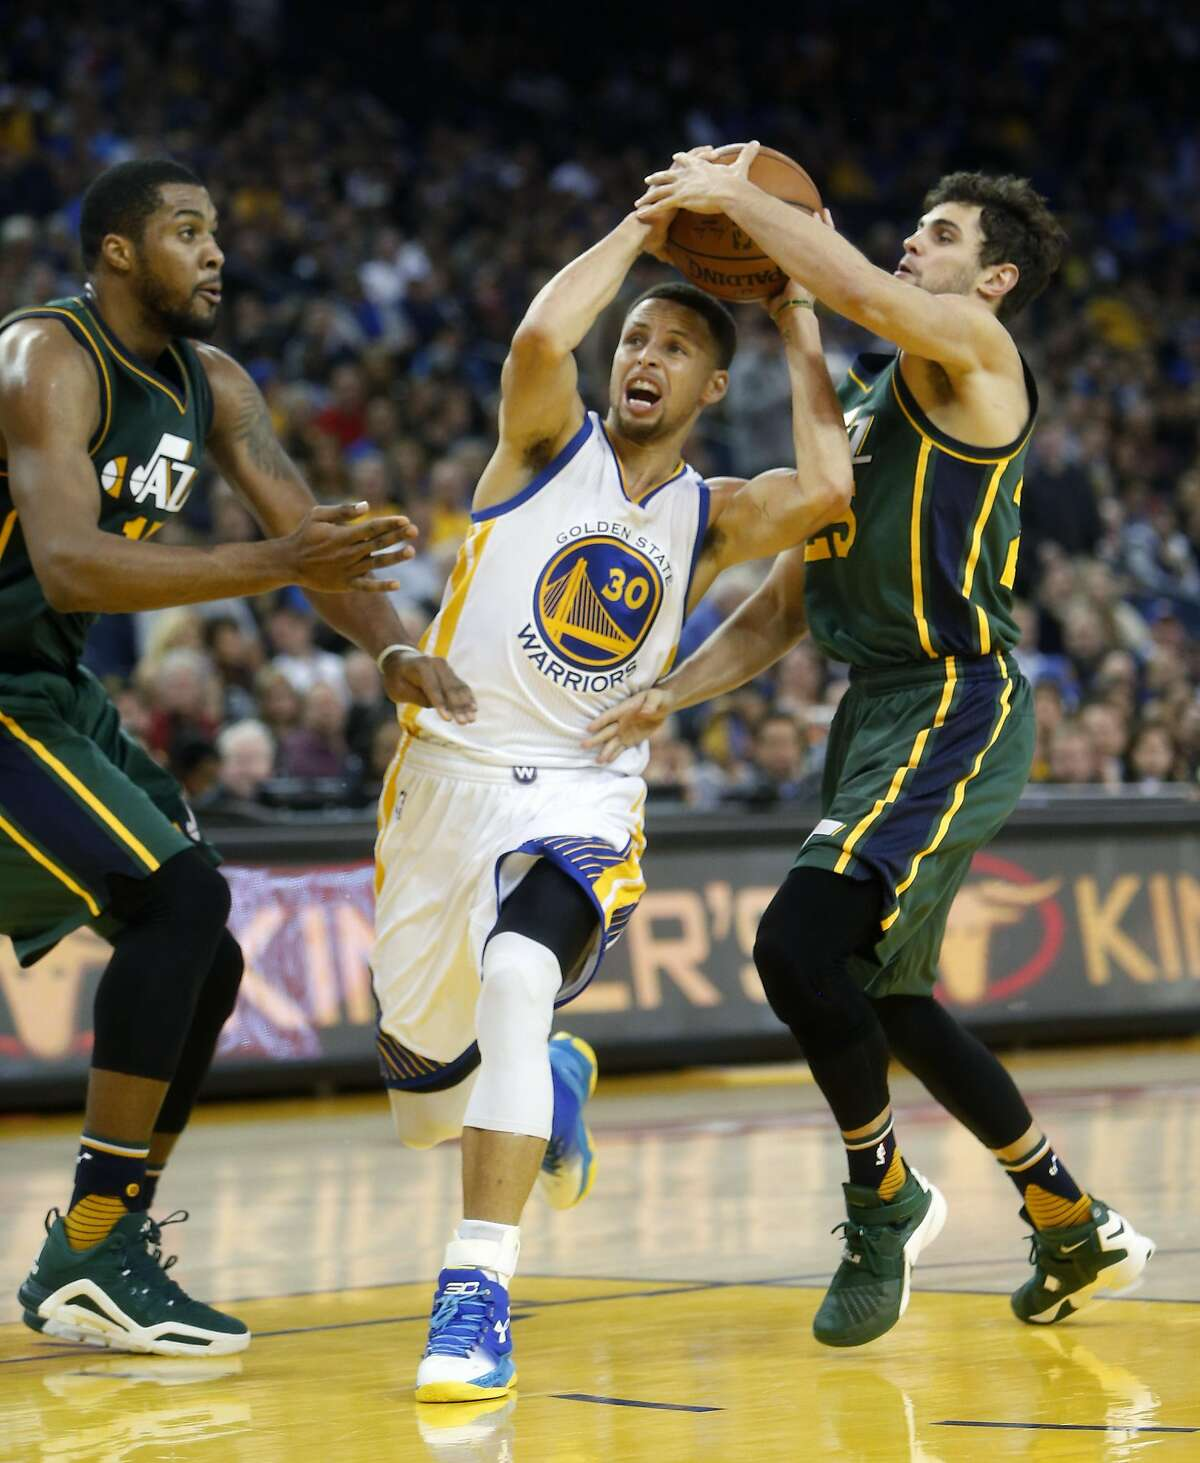 Golden State Warriors' Stephen Curry is defended by Utah Jazz' Raul Neto in 3rd quarter during NBA game at Oracle Arena in Oakland, Calif., on Wednesday, March 9, 2016.